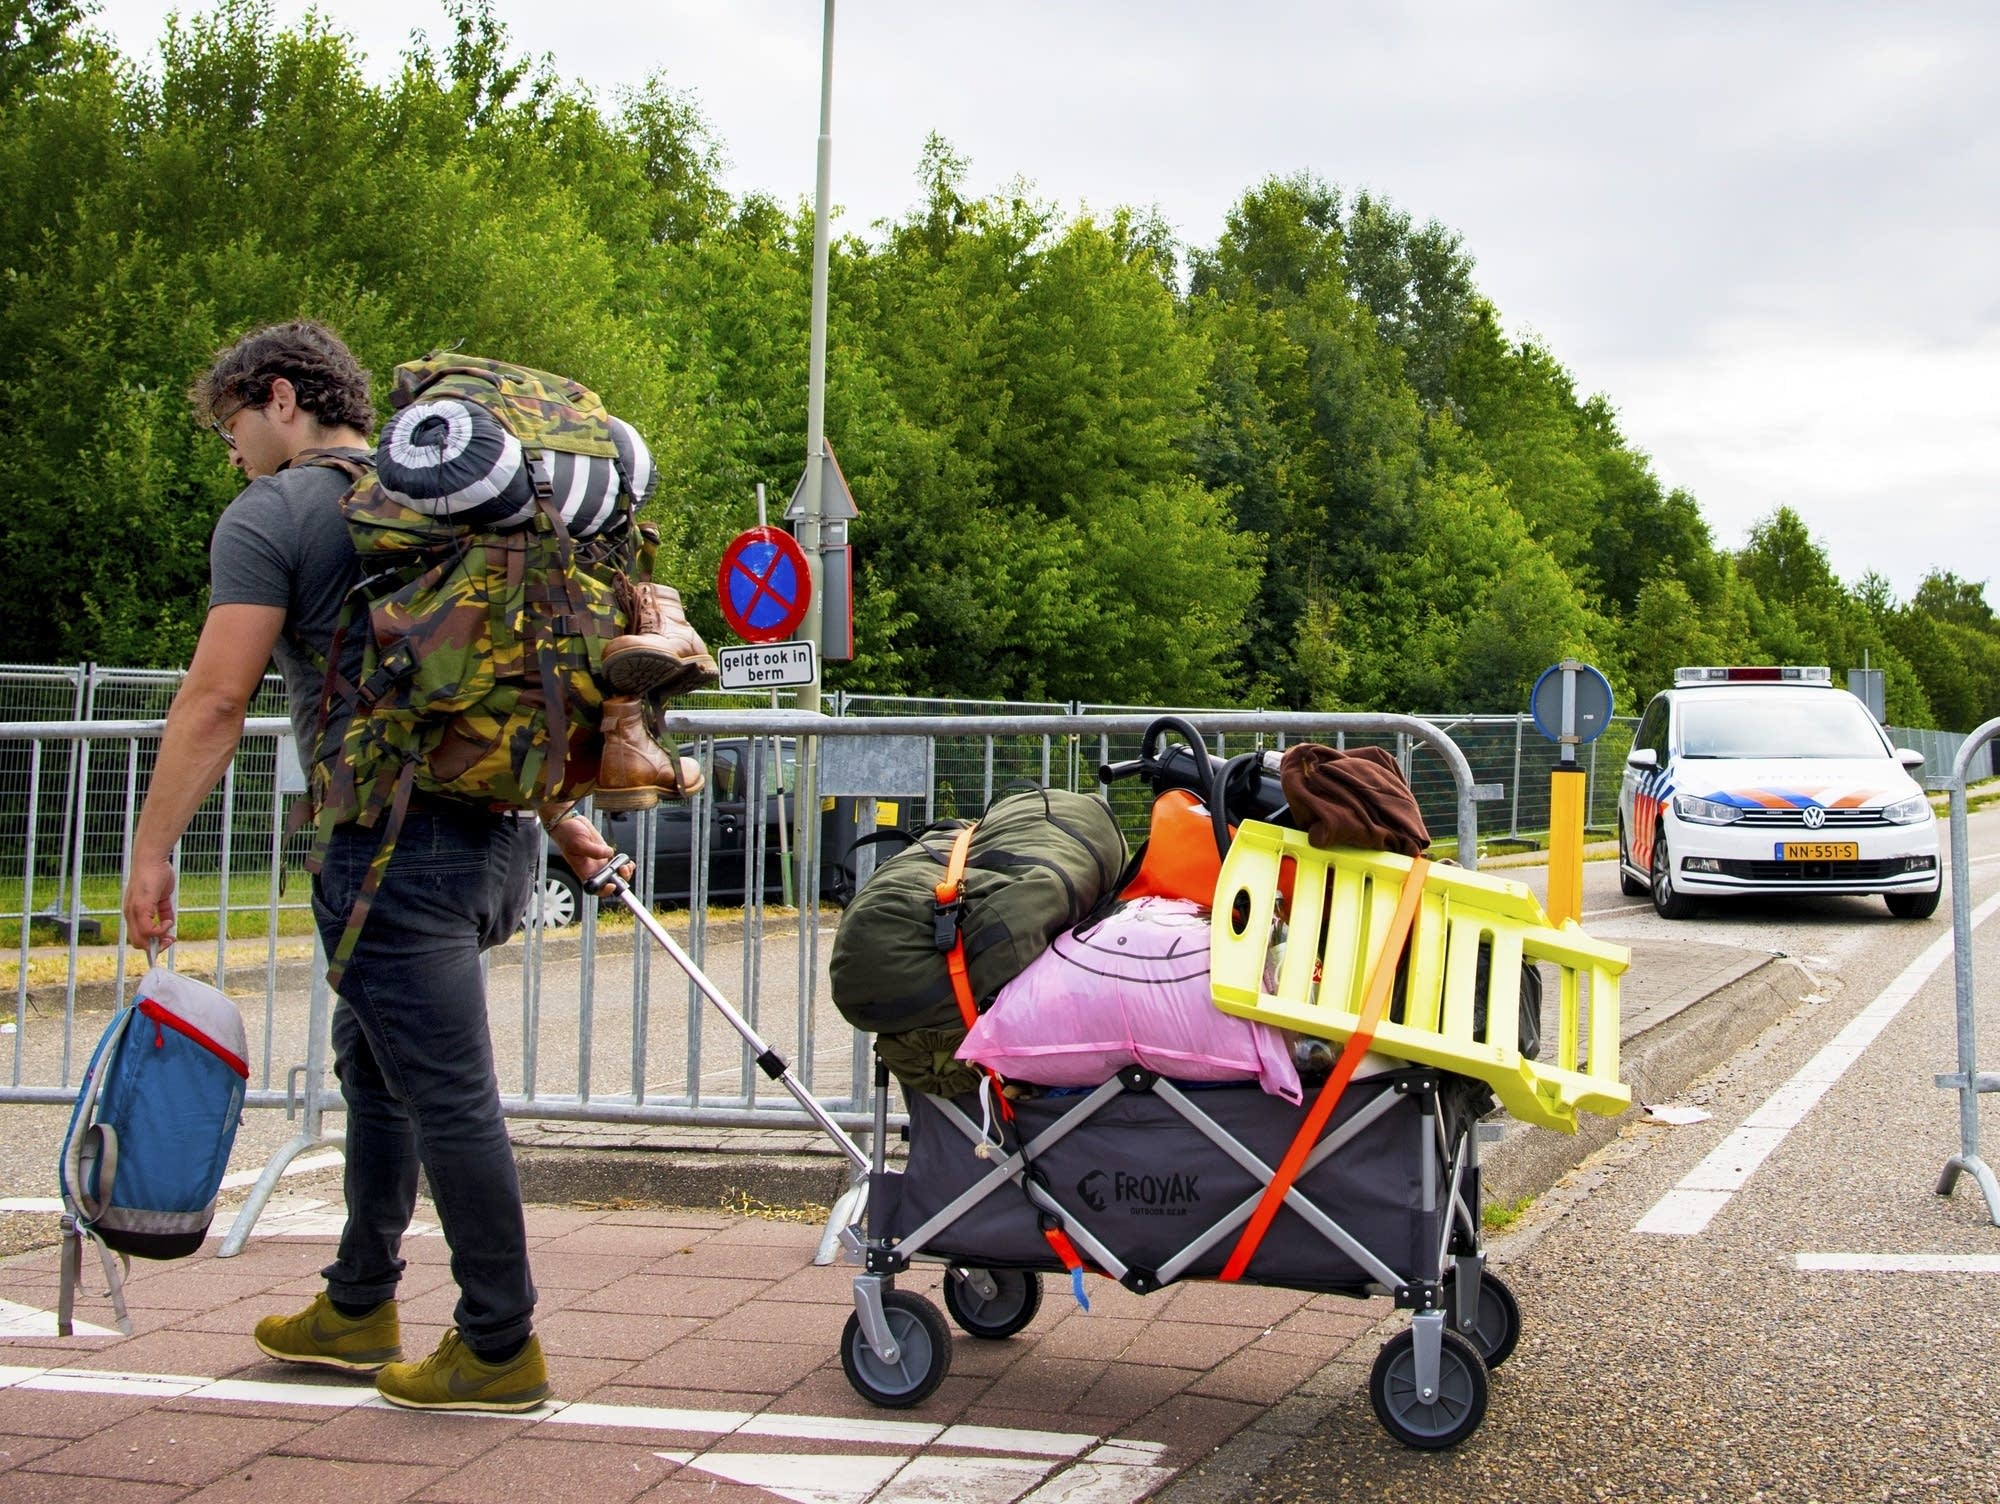 The scene outside Pinkpop festival after a van slammed into pedestrians.